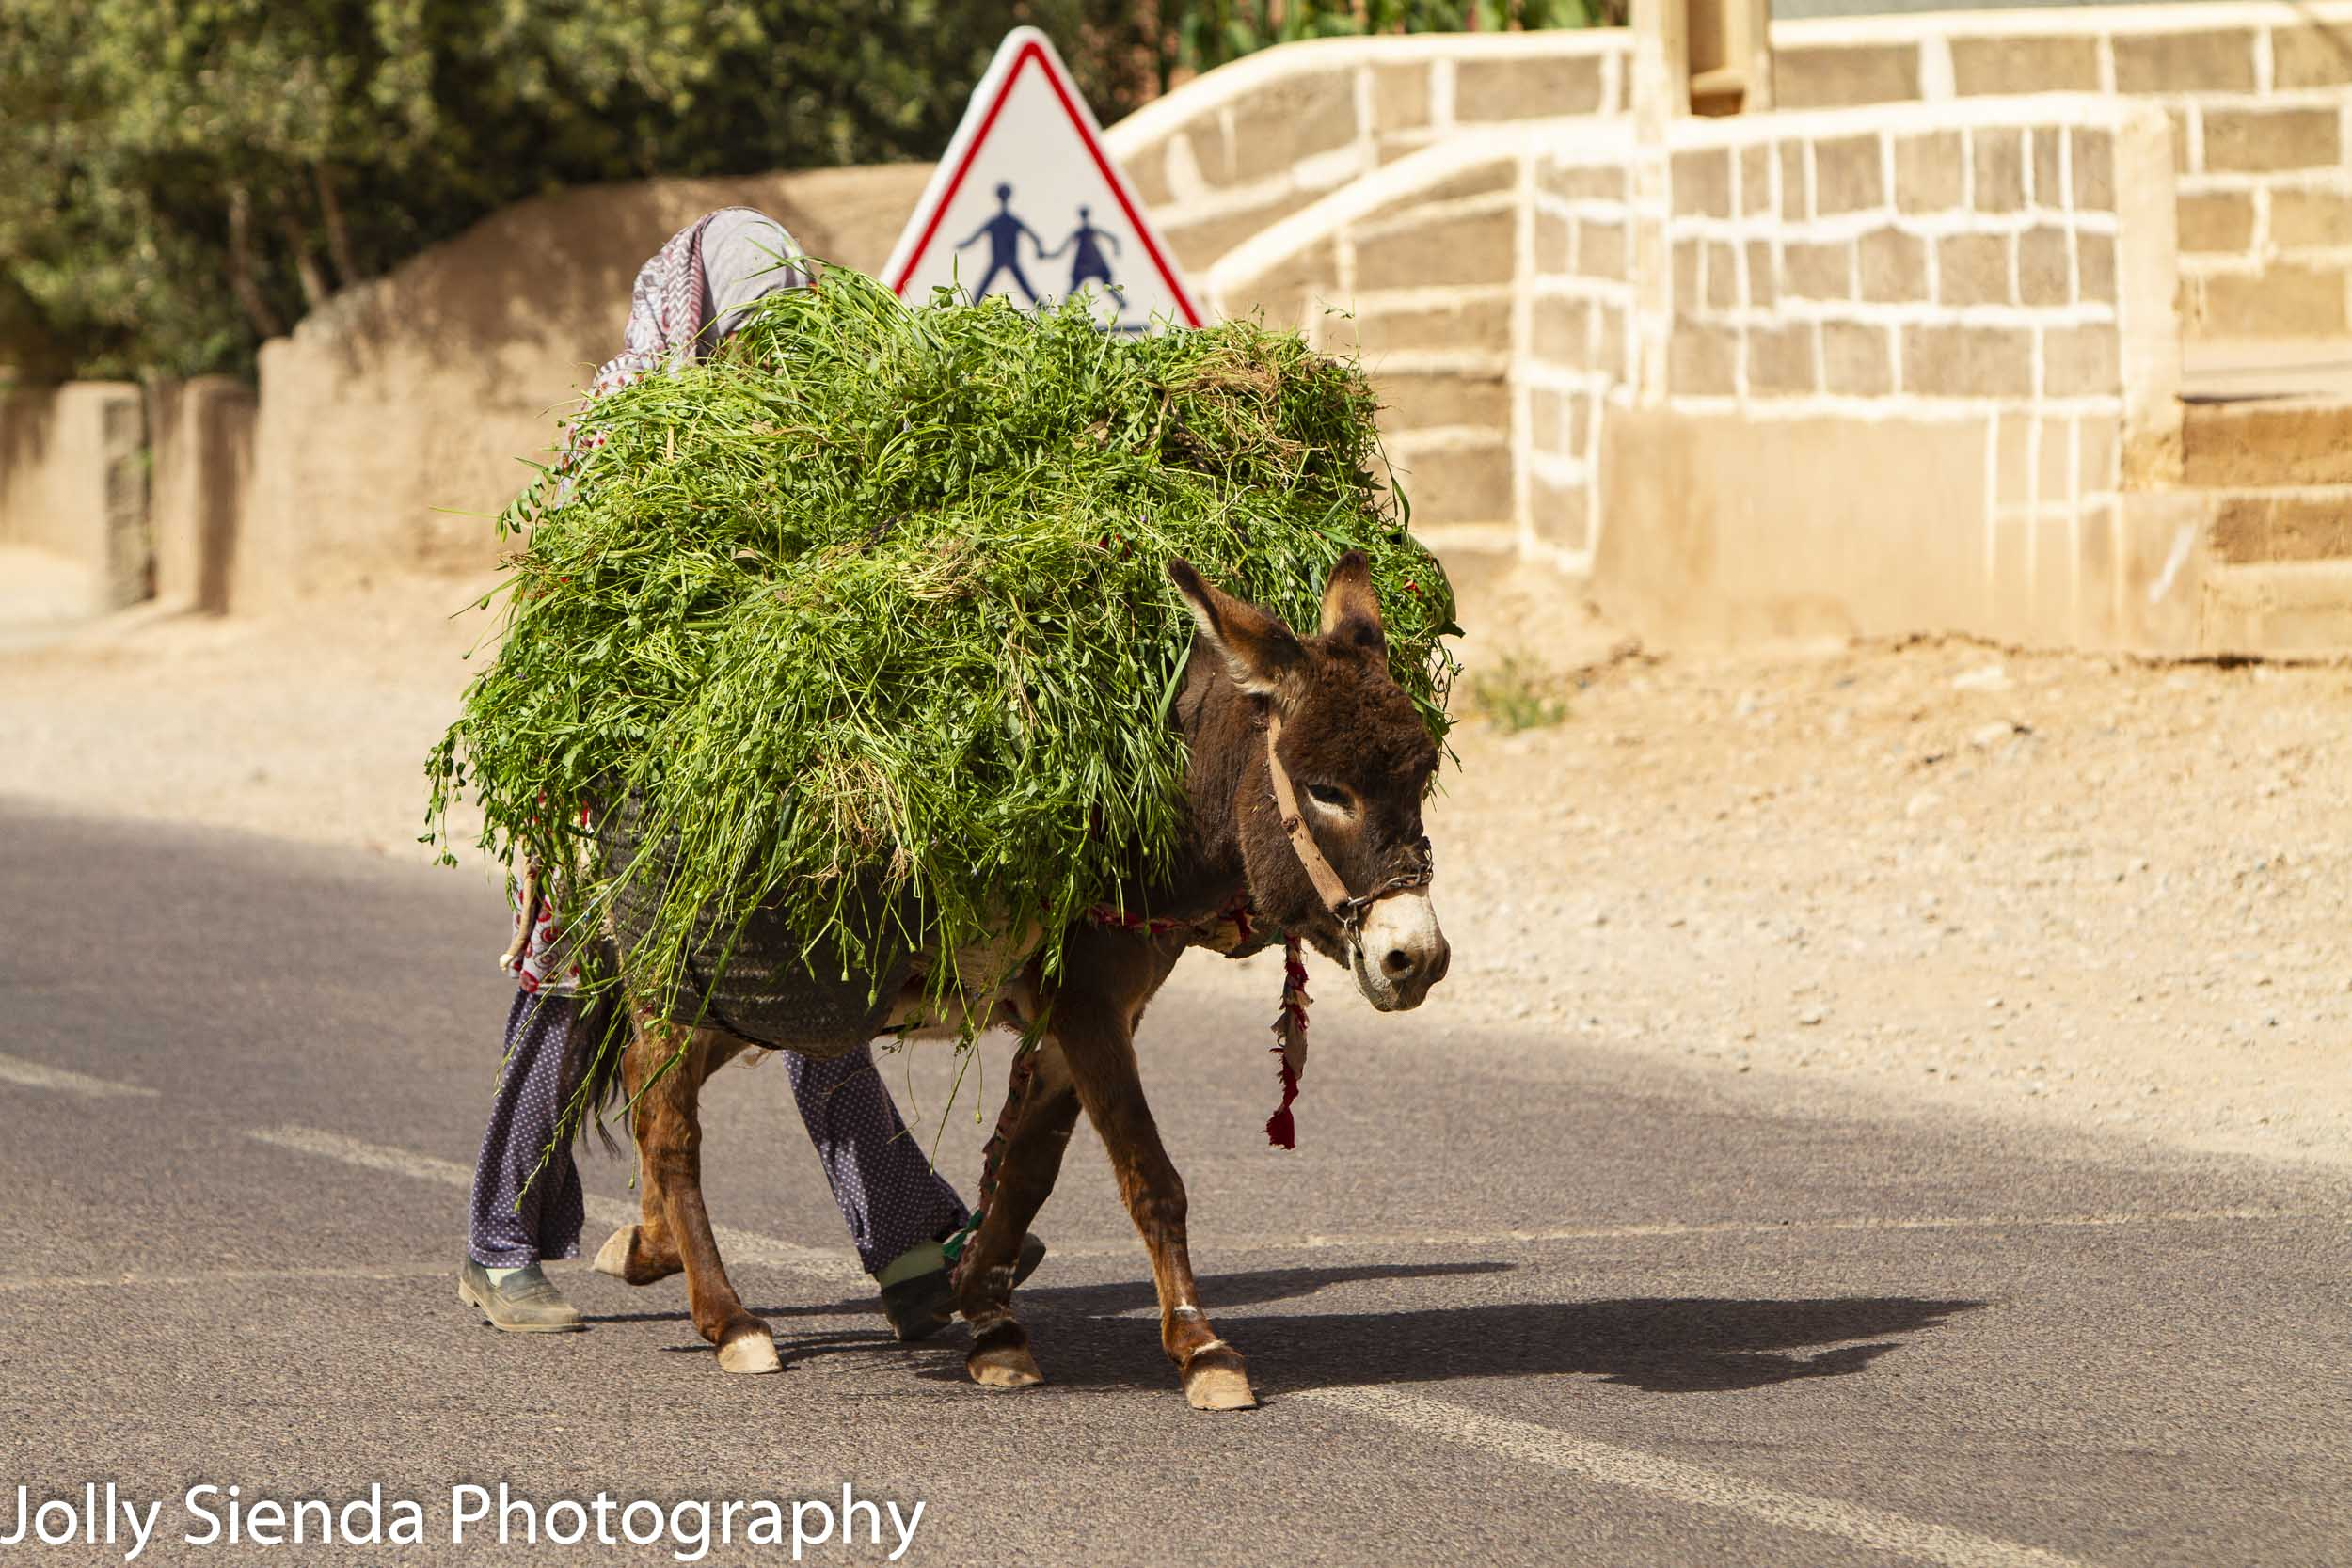 Donkey carries grasses led by a shy girl